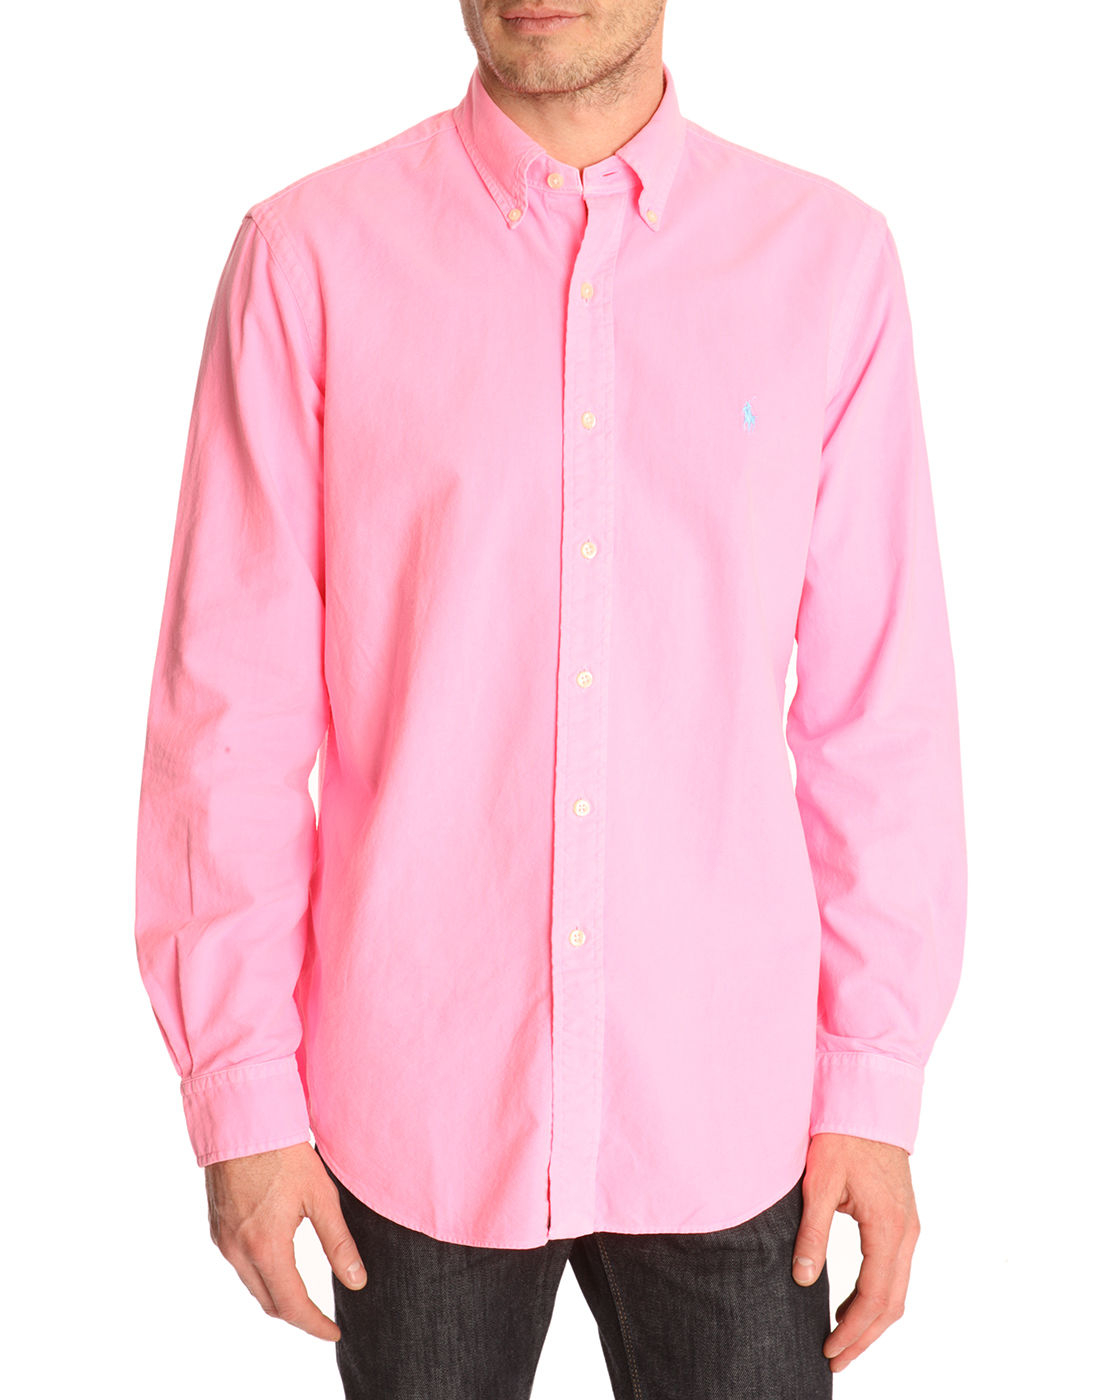 Polo Ralph Lauren Plain Oxford Slim Fit Shirt Pink Dr E